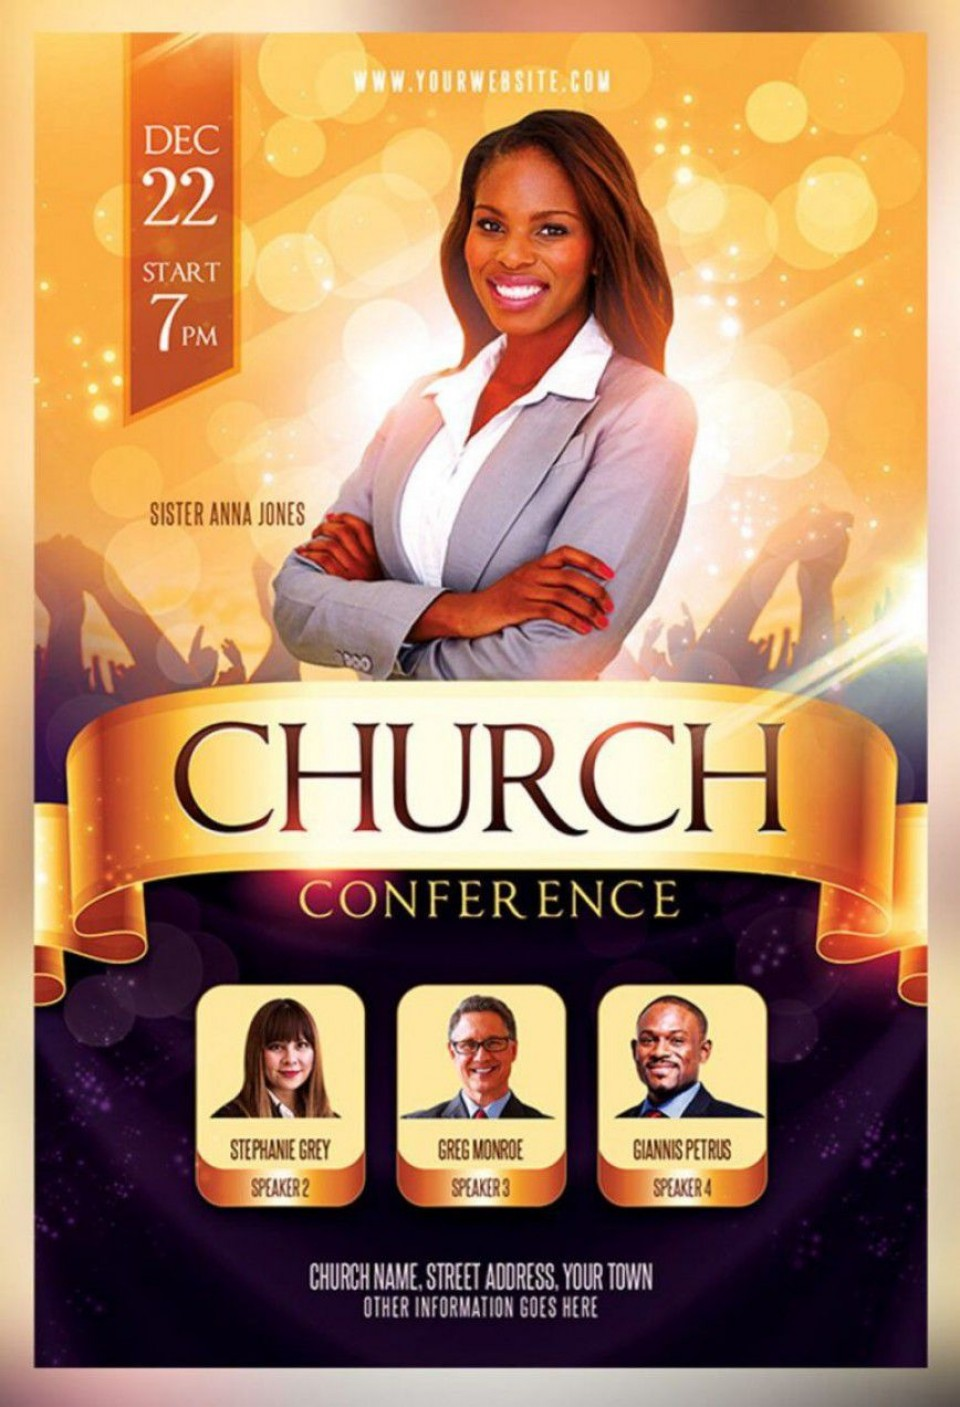 002 Beautiful Church Flyer Template Free Printable Highest Clarity  Event960